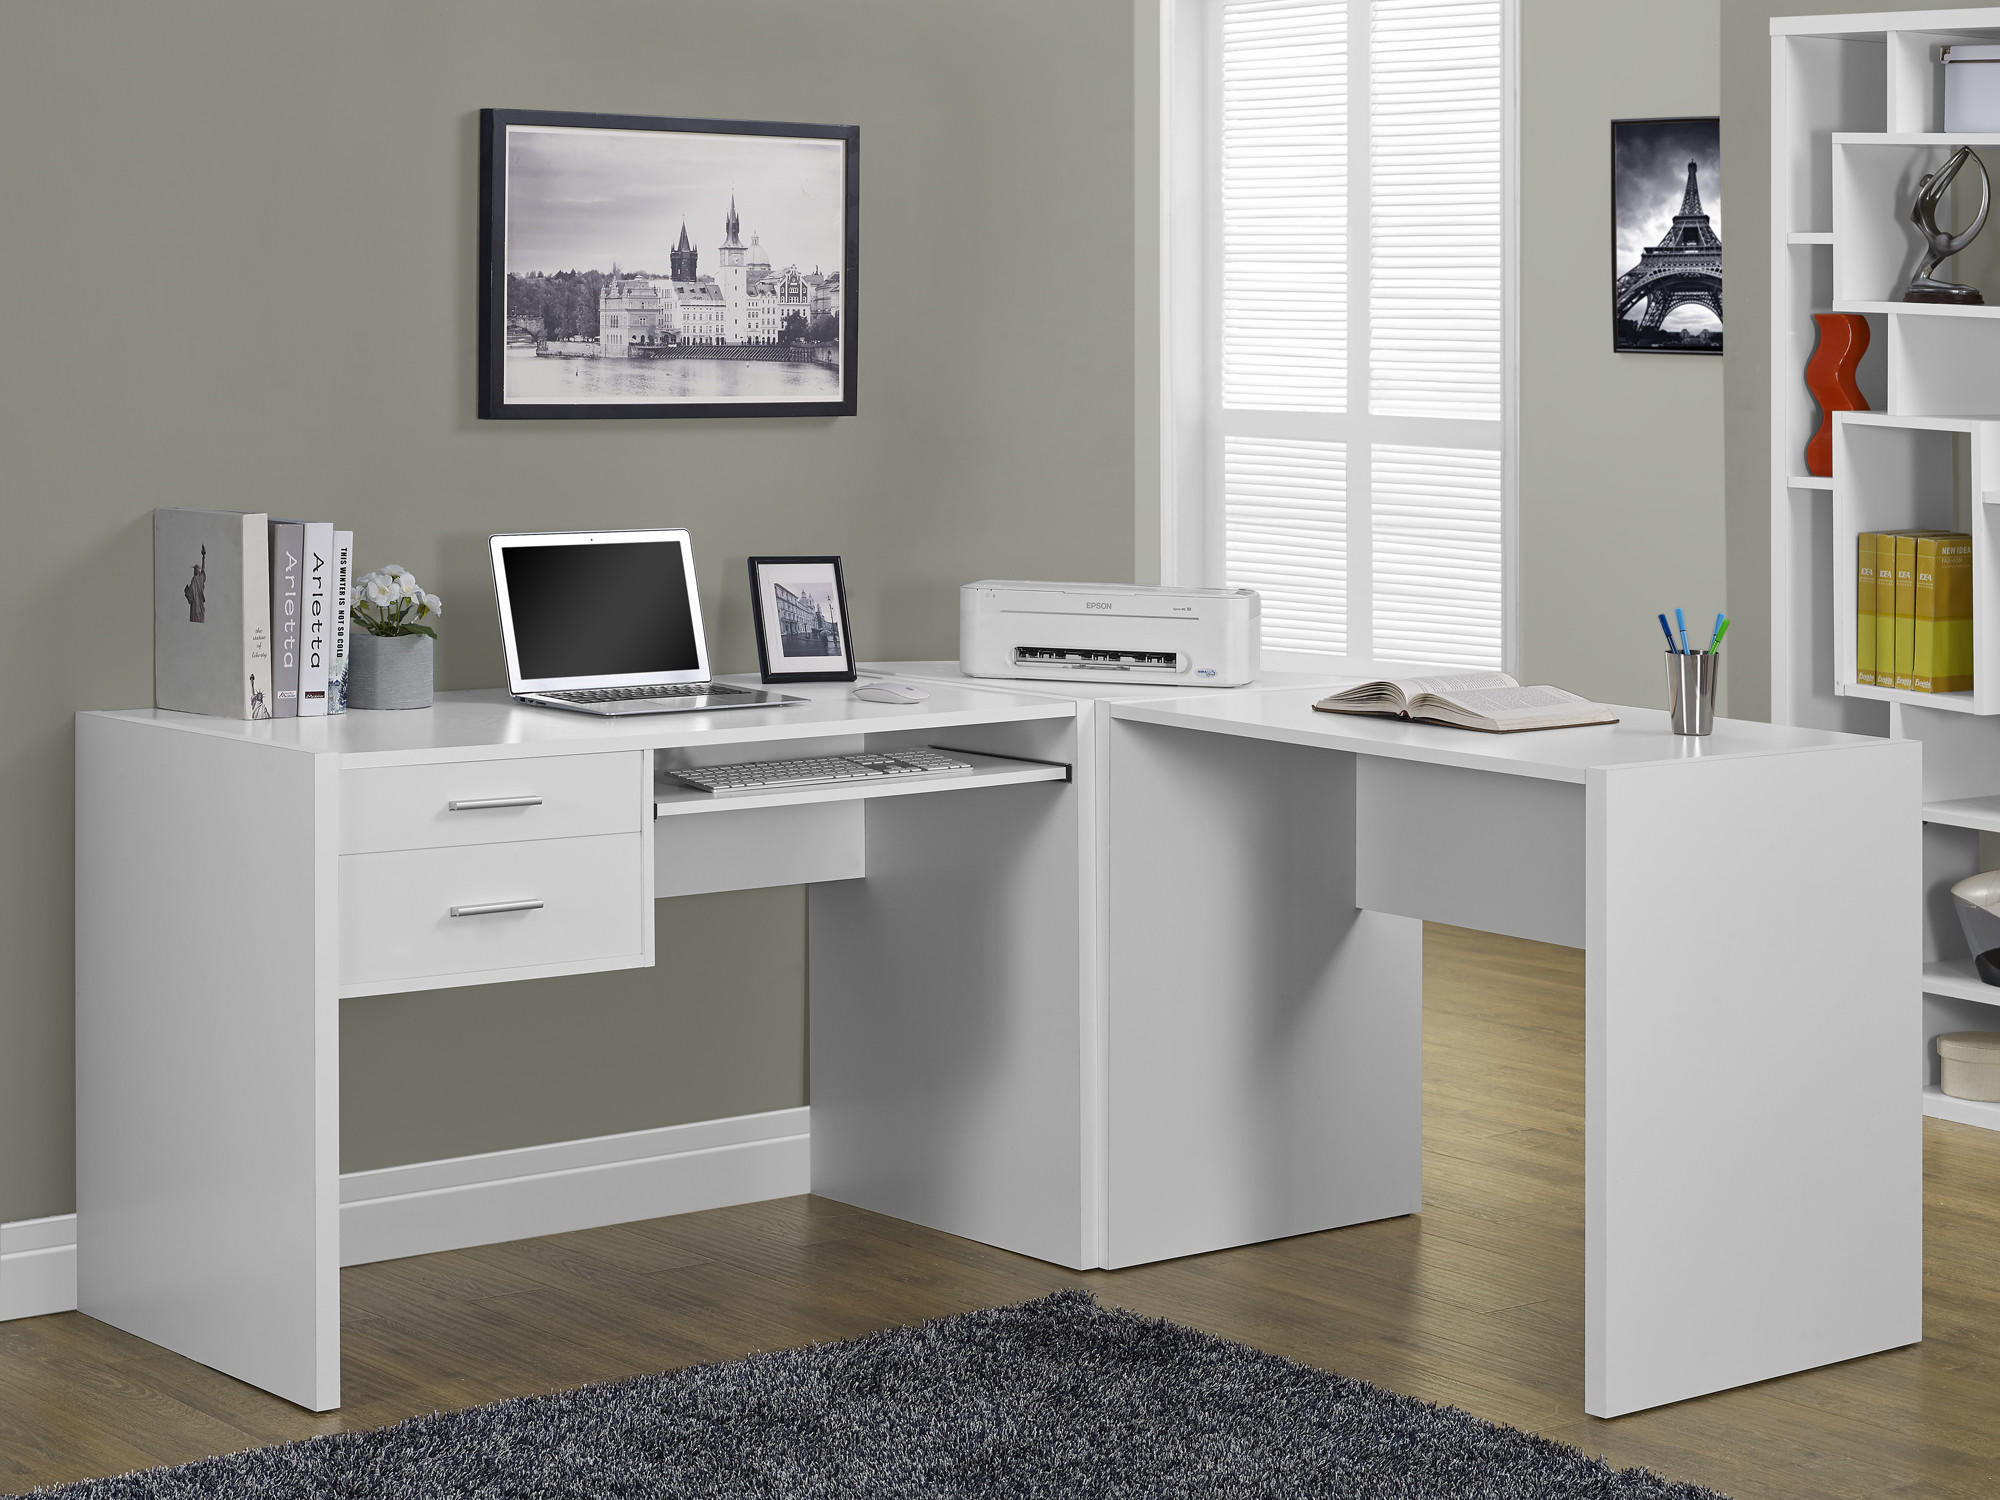 White hollow core computer desk from michael anthony furniture - Coin bureau ontwerp ...